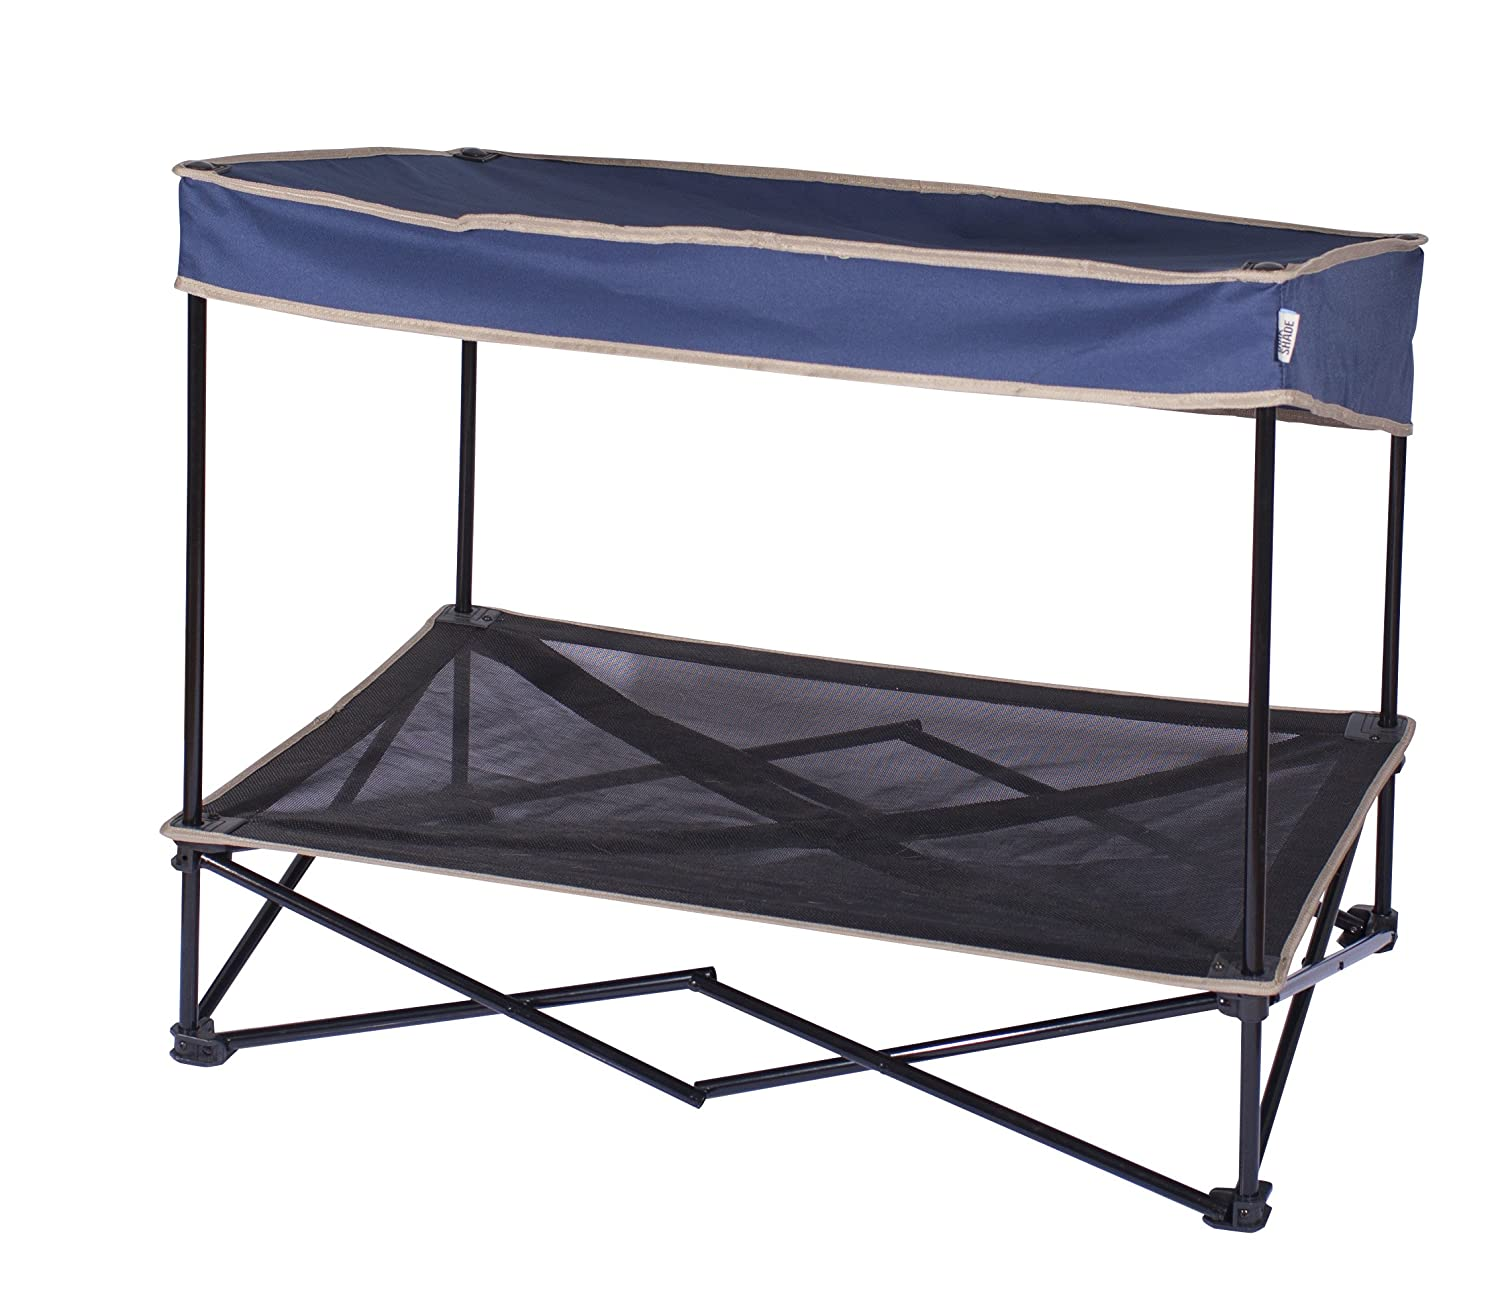 Quik Shade Pet Outdoor Instant With Elevated Mesh Bed Medium 61 X 91 74 Cm 4 Kg Navy Blue Amazoncouk Supplies